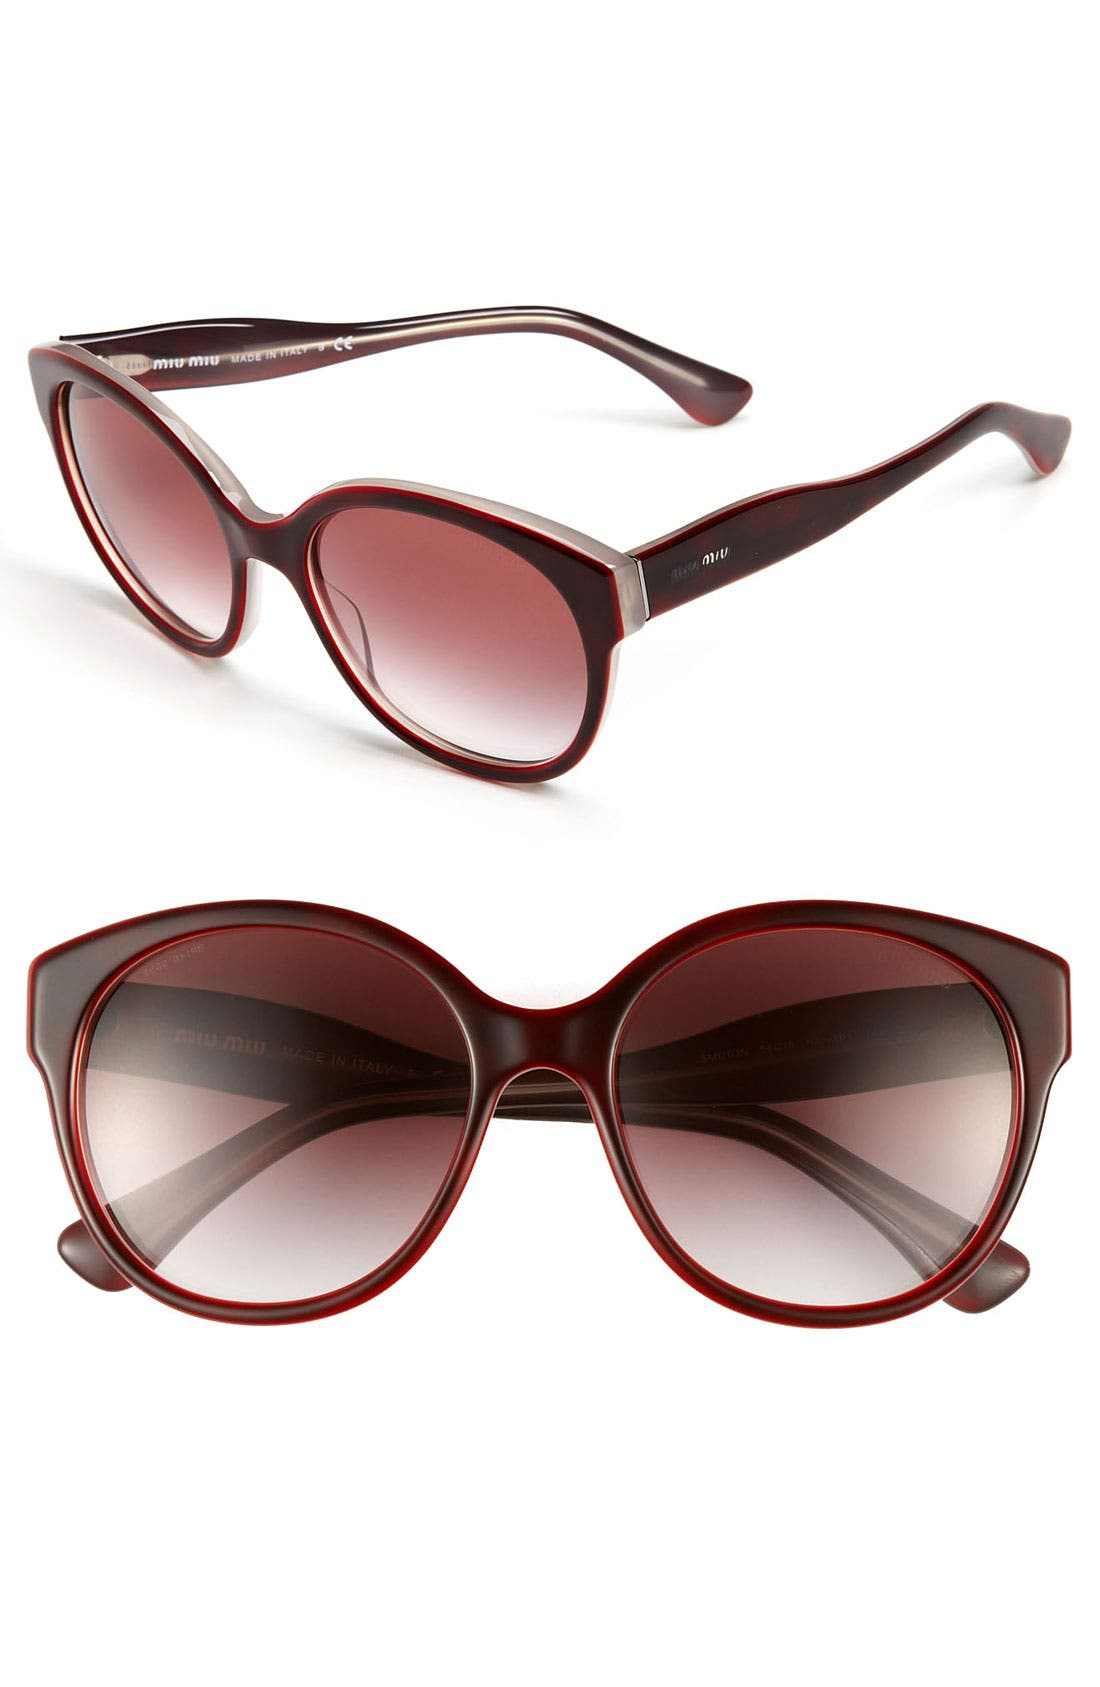 Main Image - Miu Miu Cat Eye Sunglasses